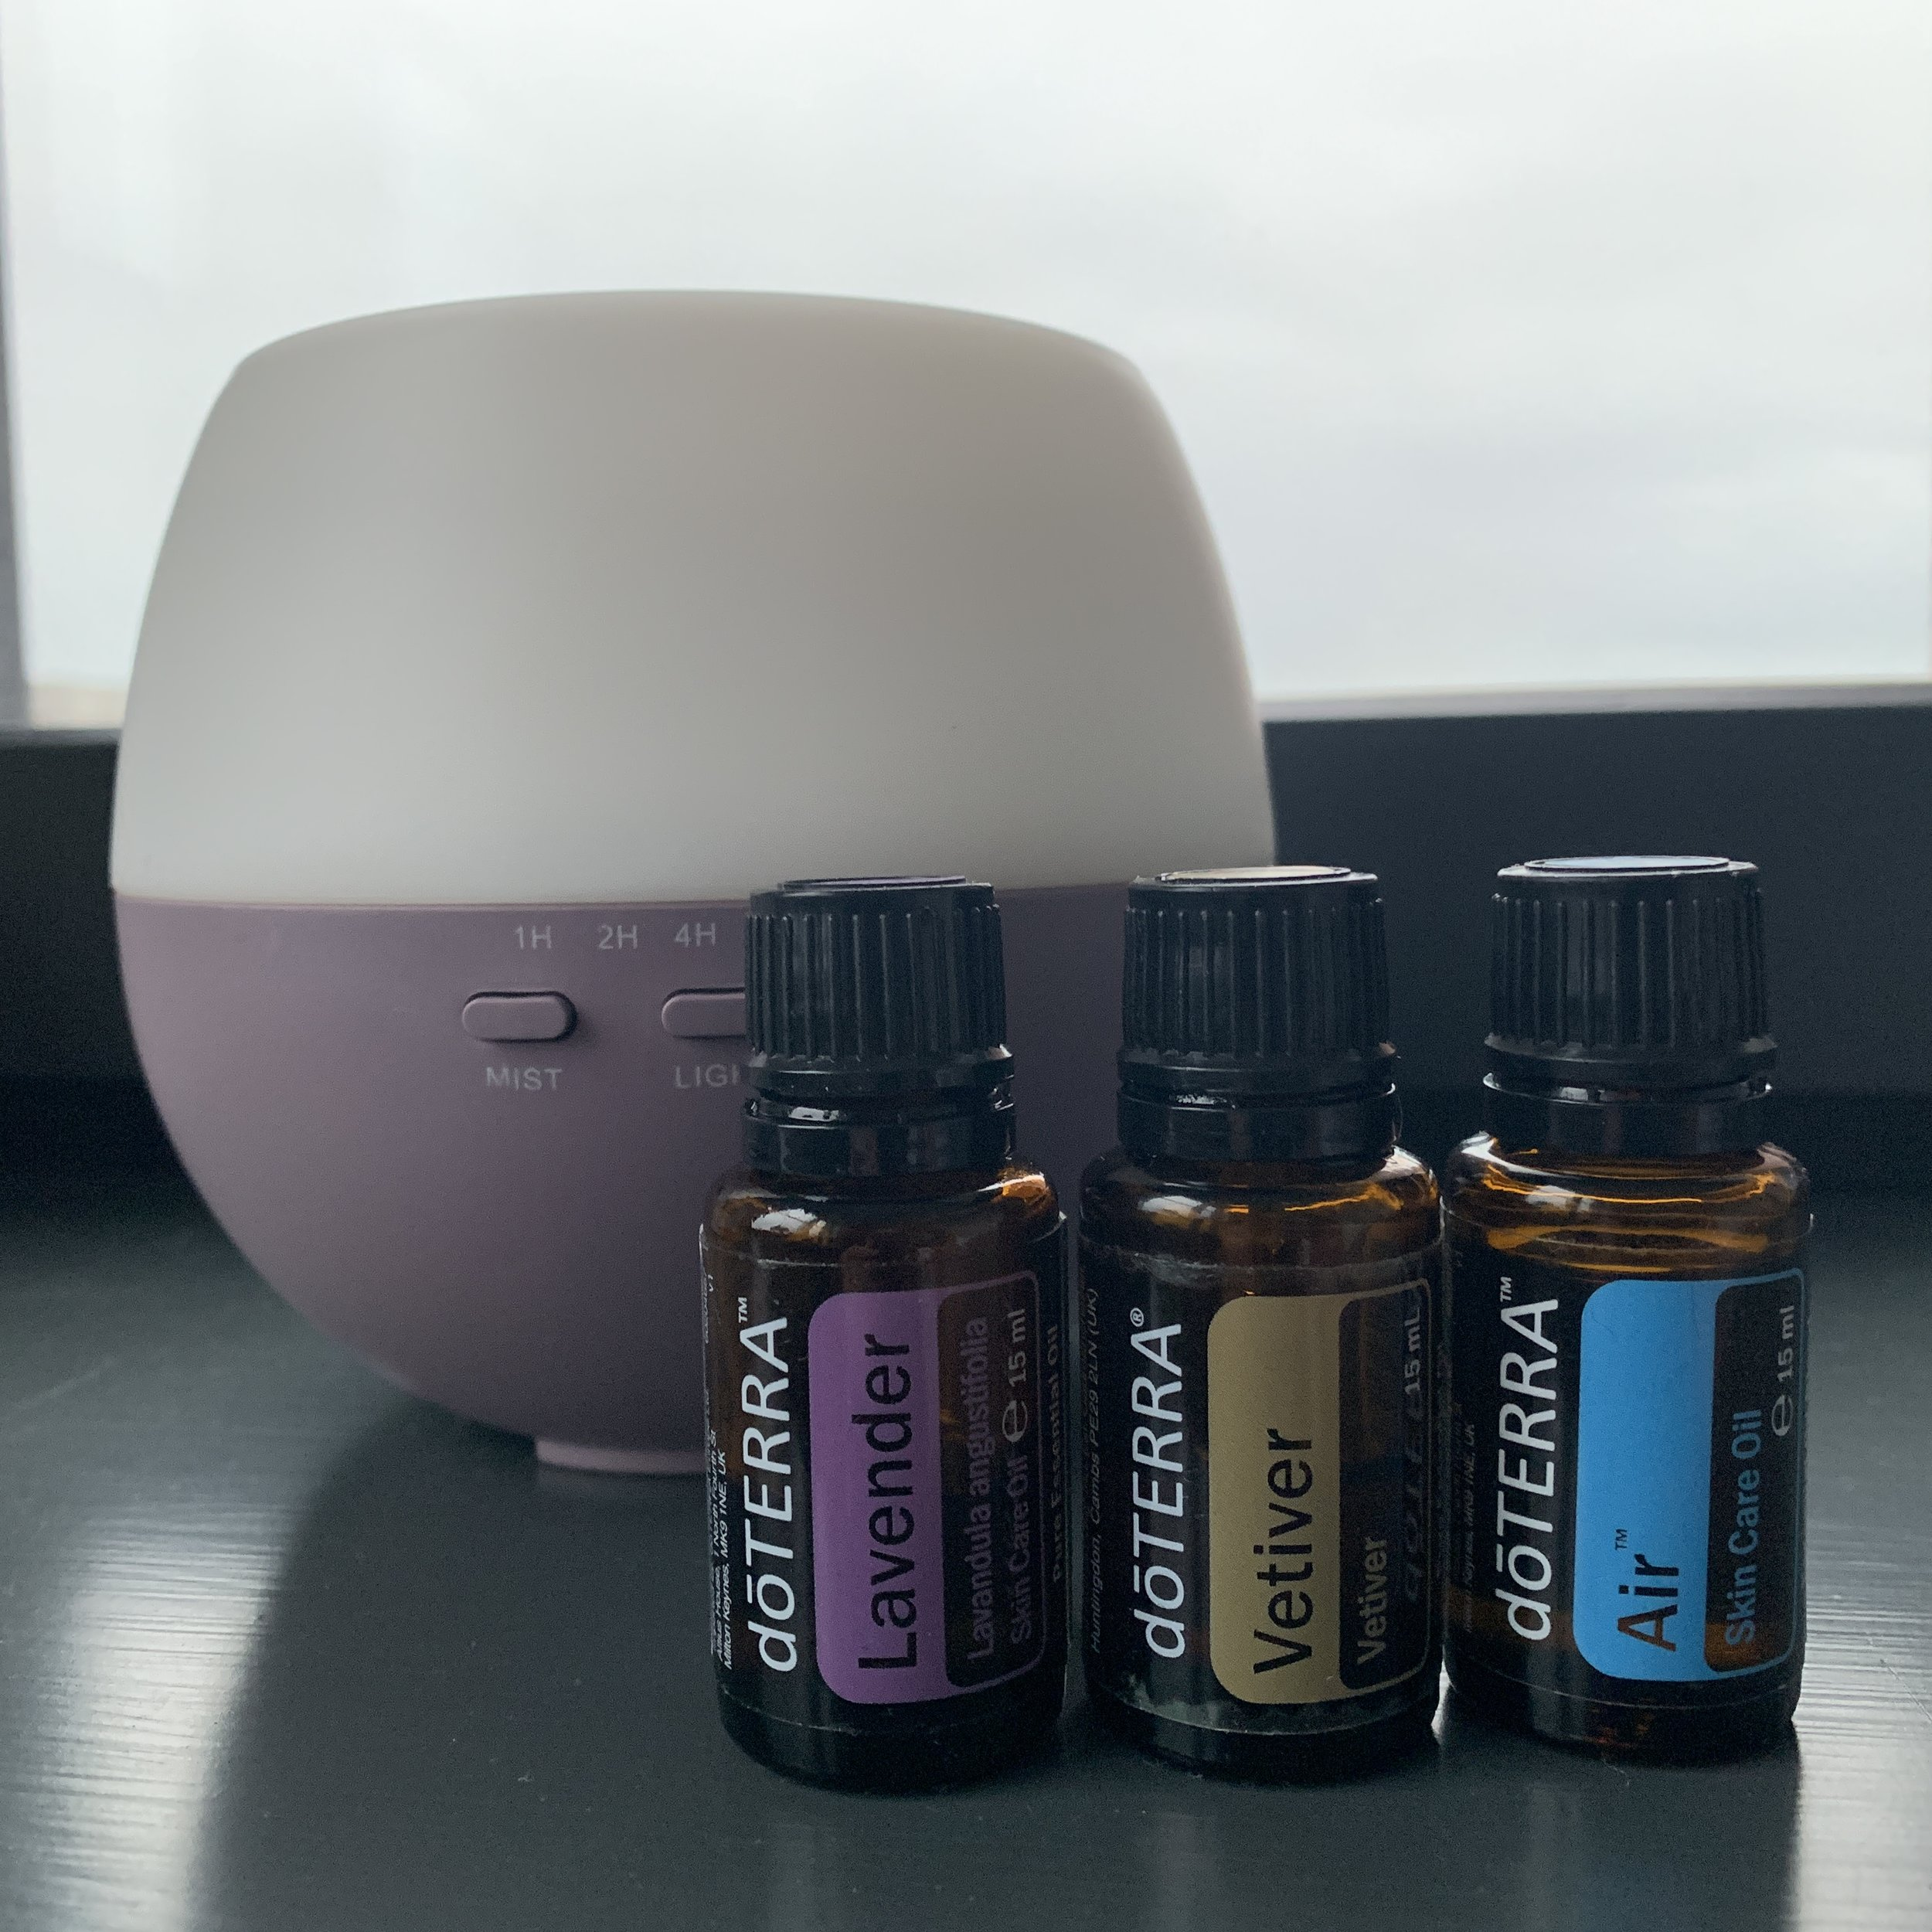 Sleep Kit €153 - Lavendel 15 ml, calming and relaxing properties that promote peaceful sleep and ease feelings of tension. #60204657Vetiver 15 ml, provide a calming, grounding effect on emotions—making it ideal for massage therapy and promoting restful sleep.* #60204698Air 15 ml, Maintains feelings of clear airways and easy breathing. #60203777Petal Diffuser, night-friendly diffuser with a far-reaching mist designed to help purify and humidify the air around you. #33150005(If you are not yet a member remember to add €25 for the enrollment fee).